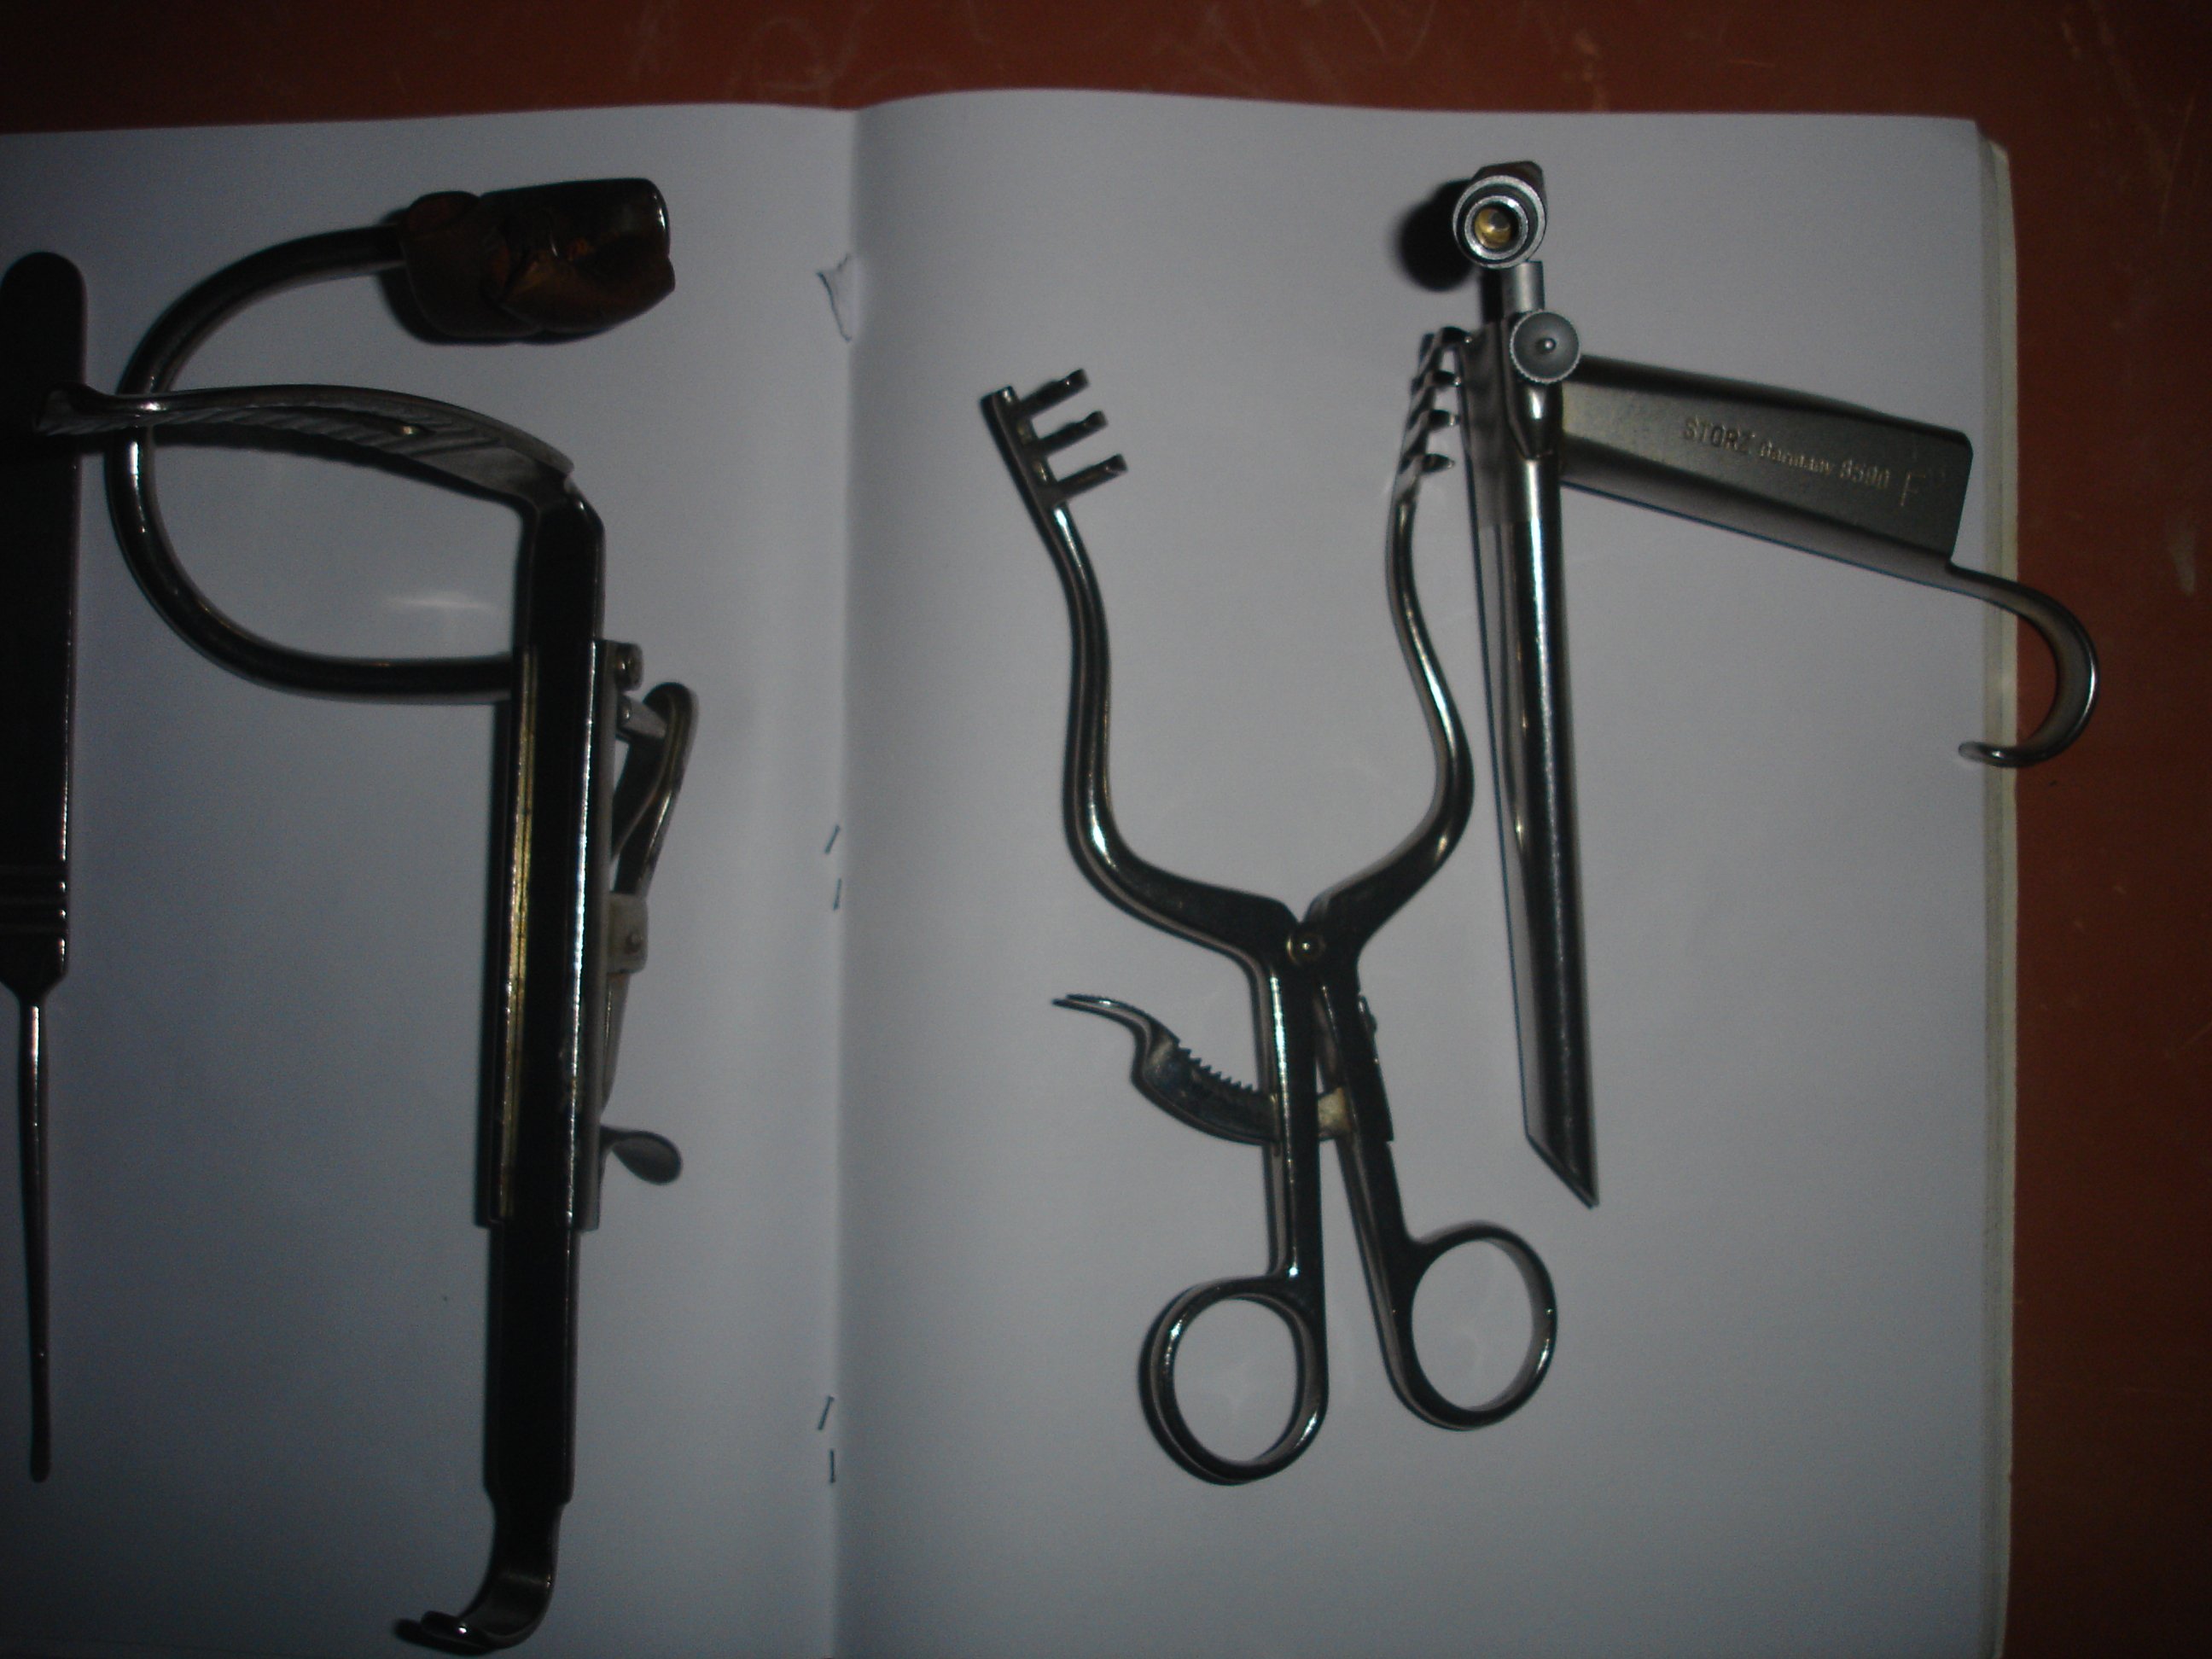 File:ENT surgery instruments 02 JPG - Wikimedia Commons